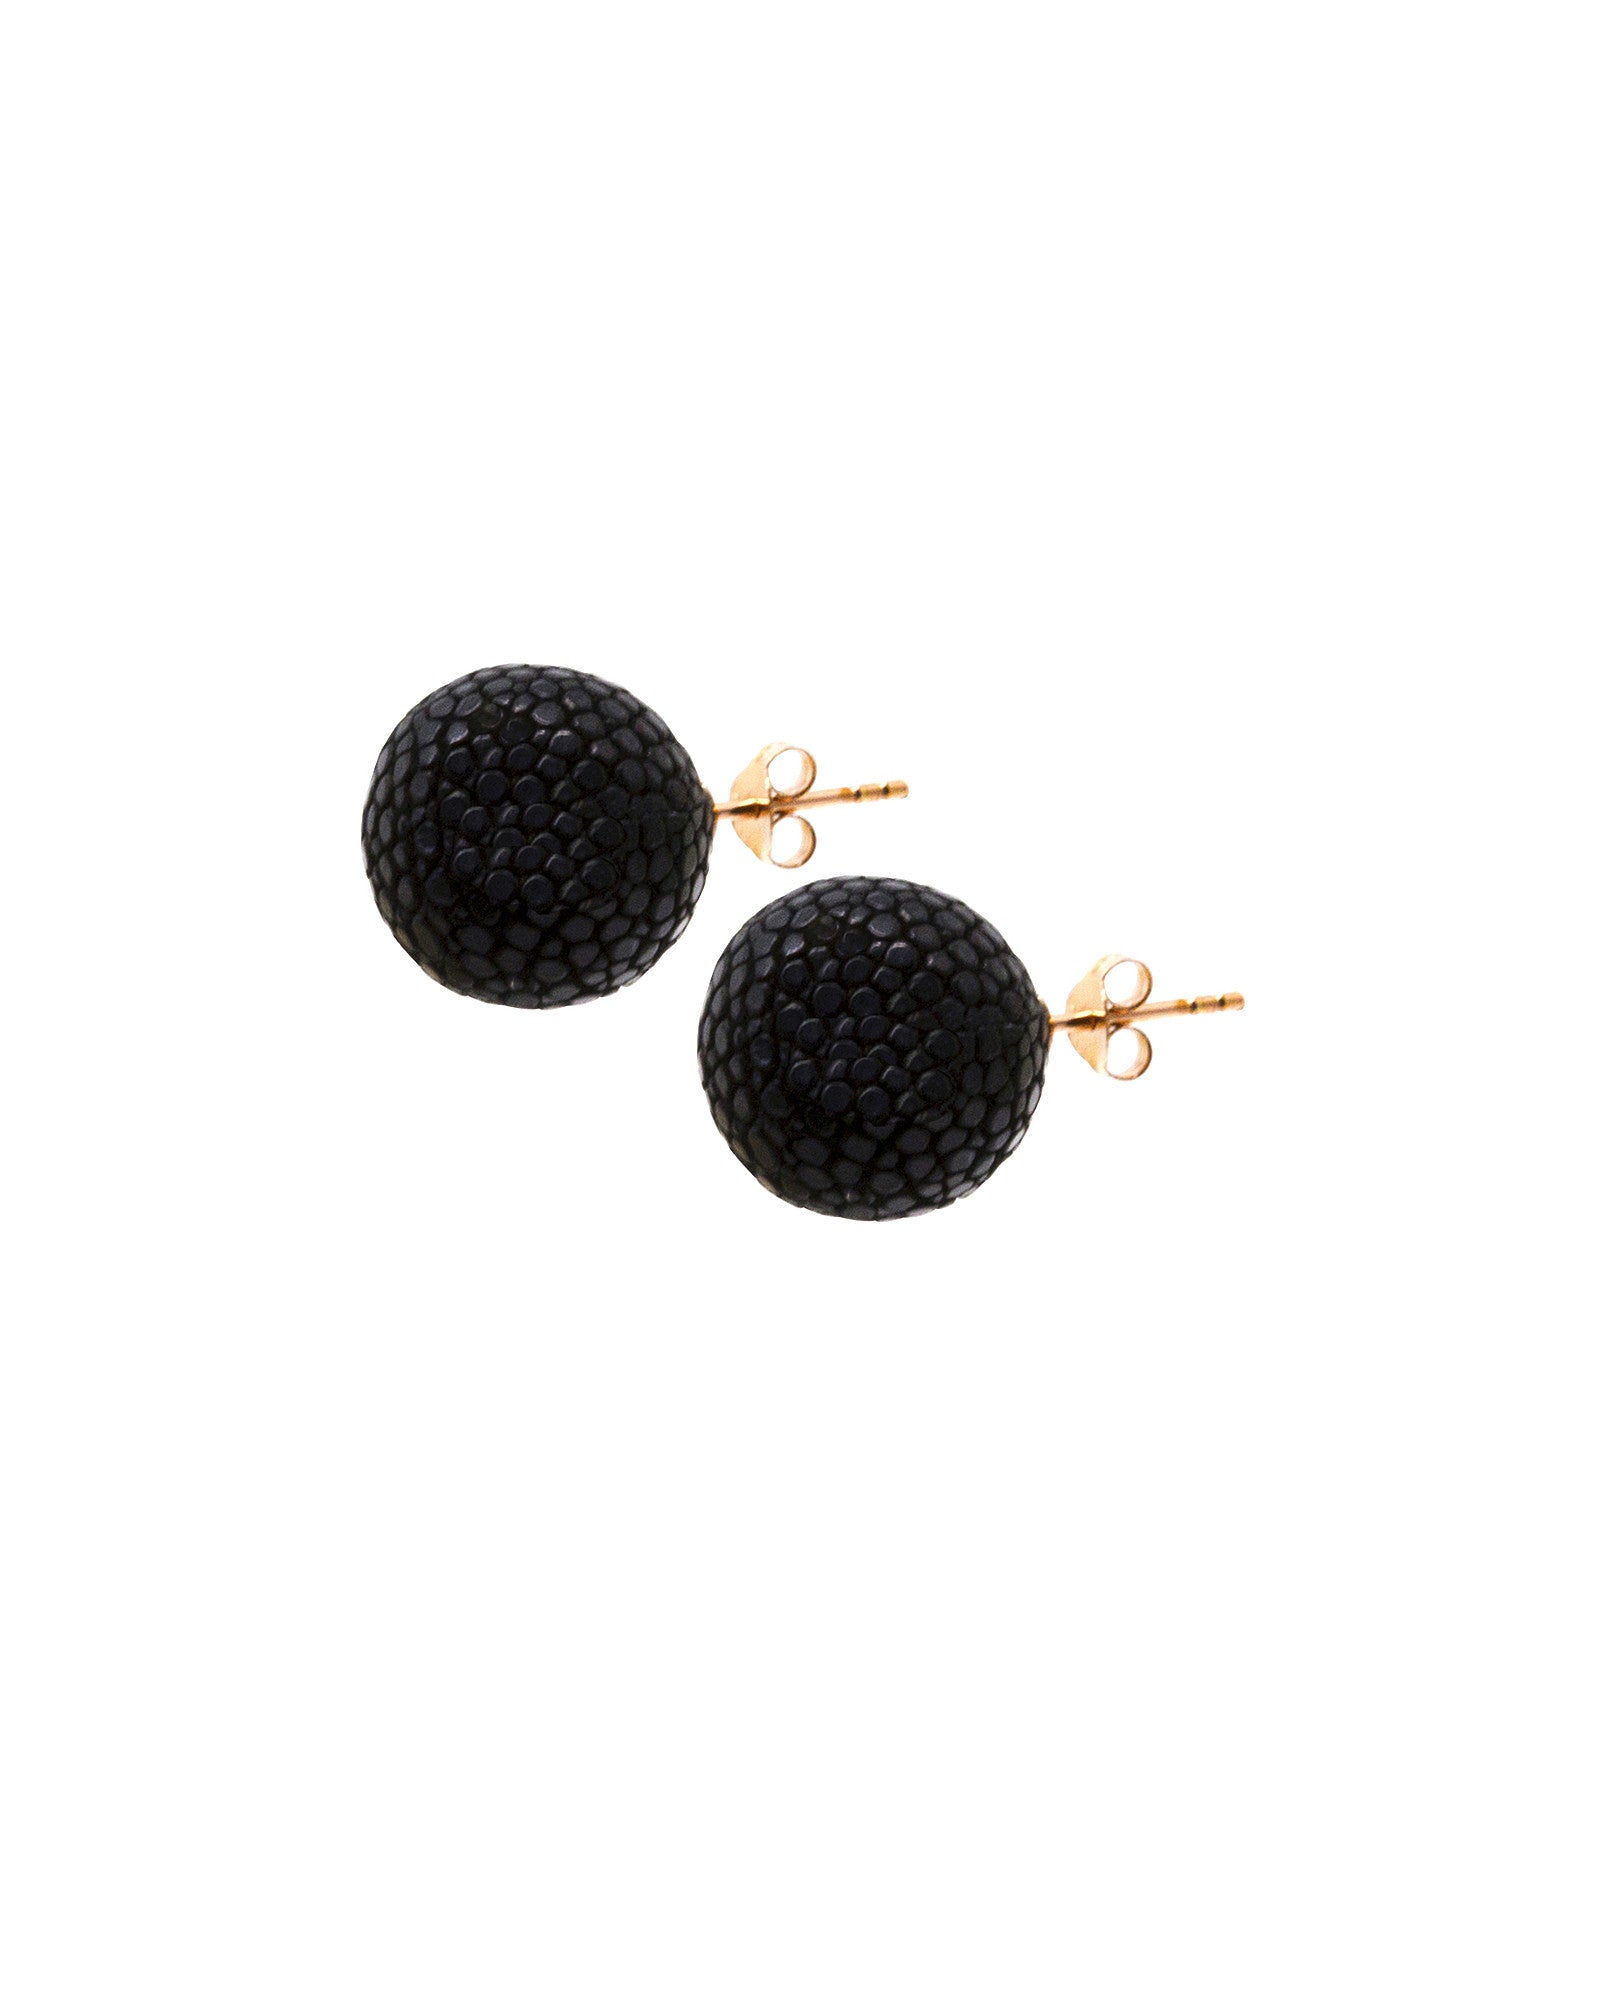 Elan Bijoux - Noir Stud Earrings - The Velvet Closet